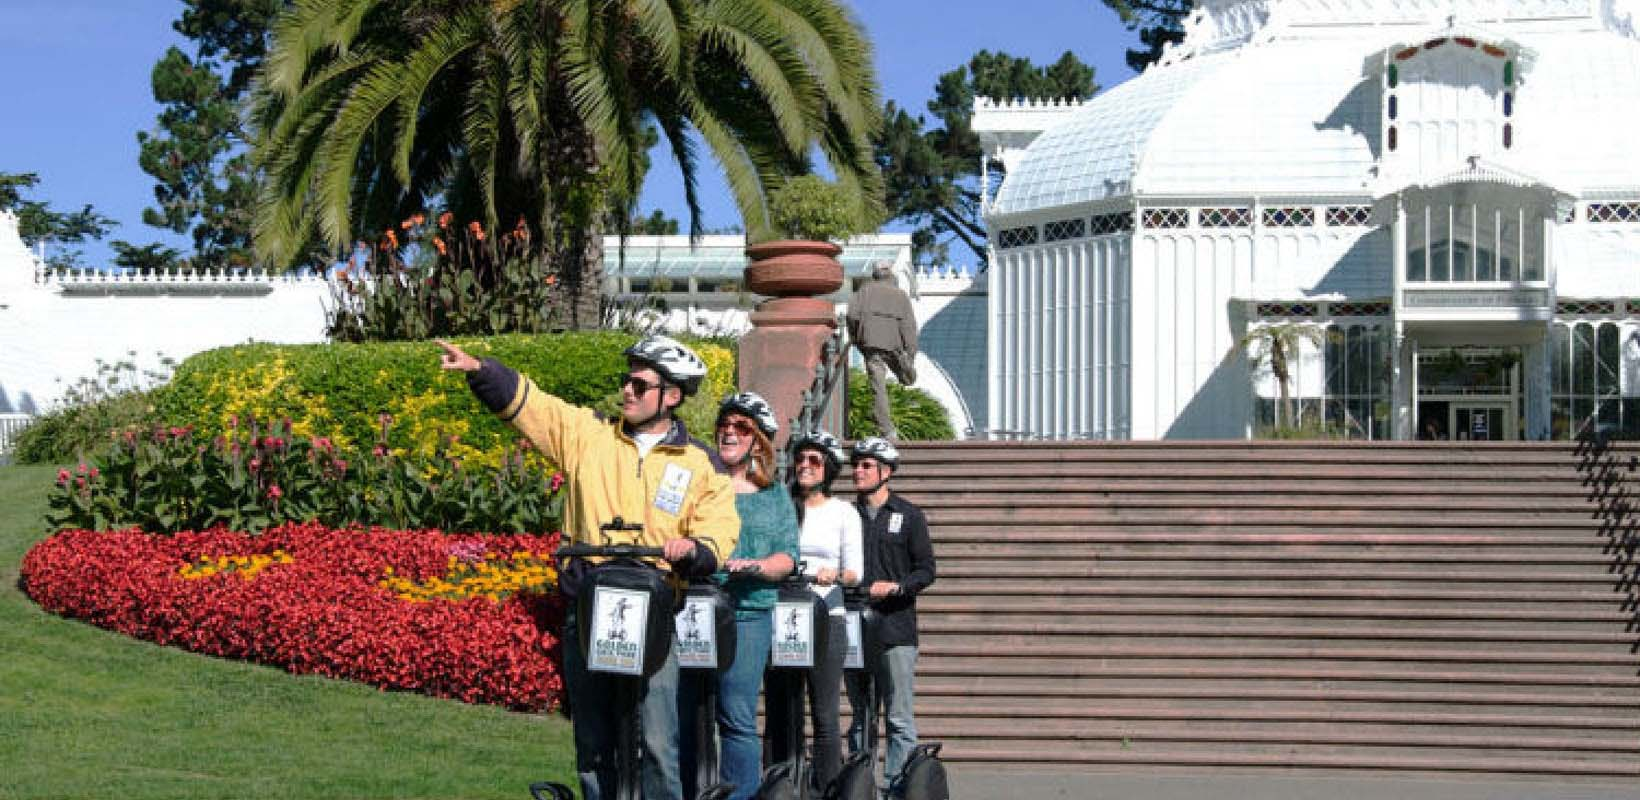 golden-gate-park-segway-tour-to-ocean-and-windmills